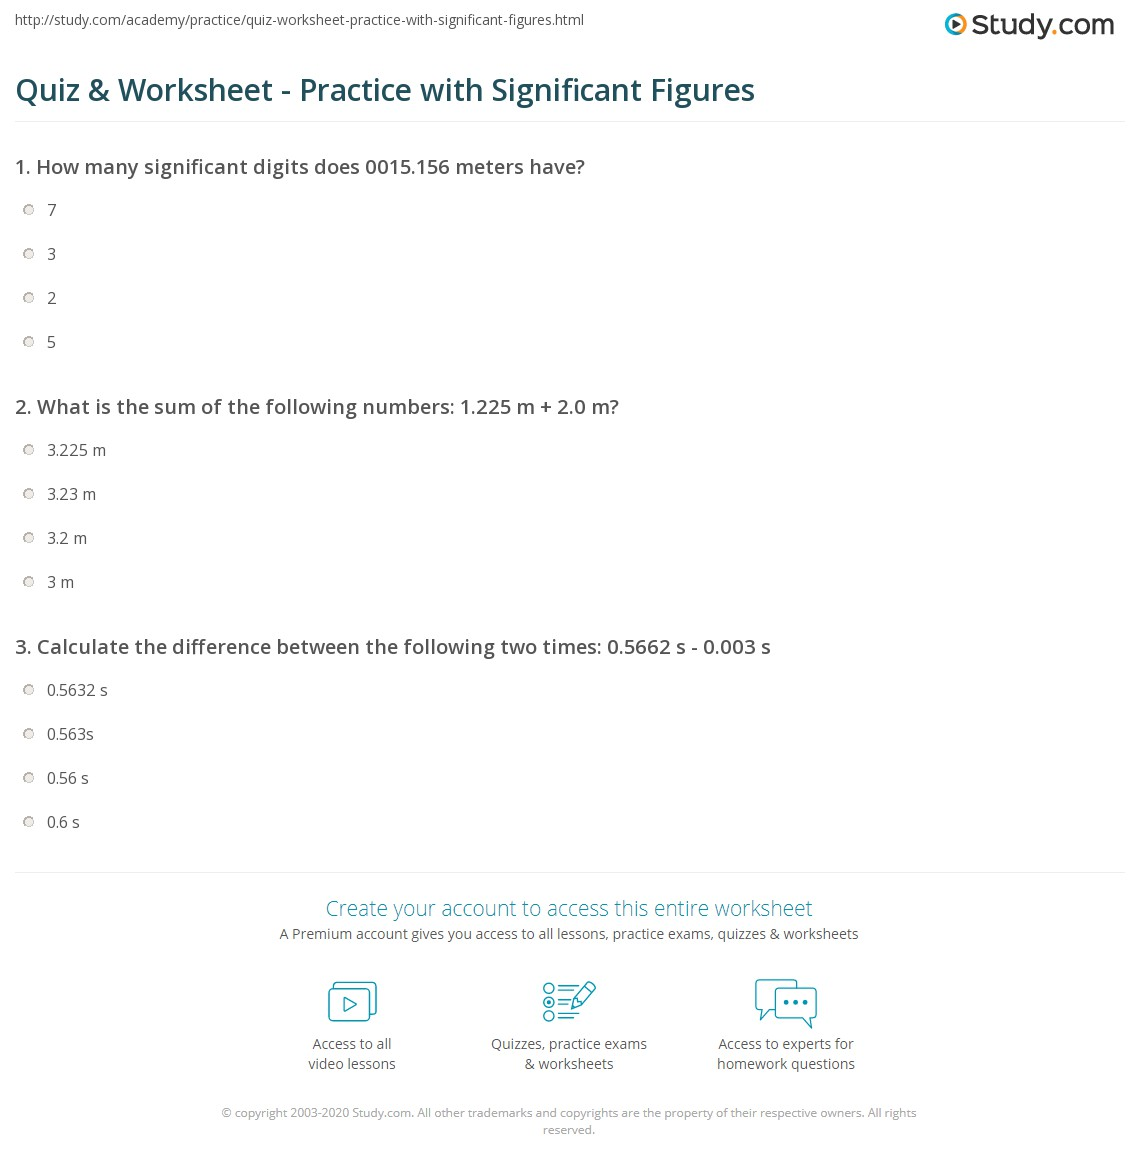 worksheet Calculations Using Significant Figures Worksheet quiz worksheet practice with significant figures study com print figure definition examples problems worksheet